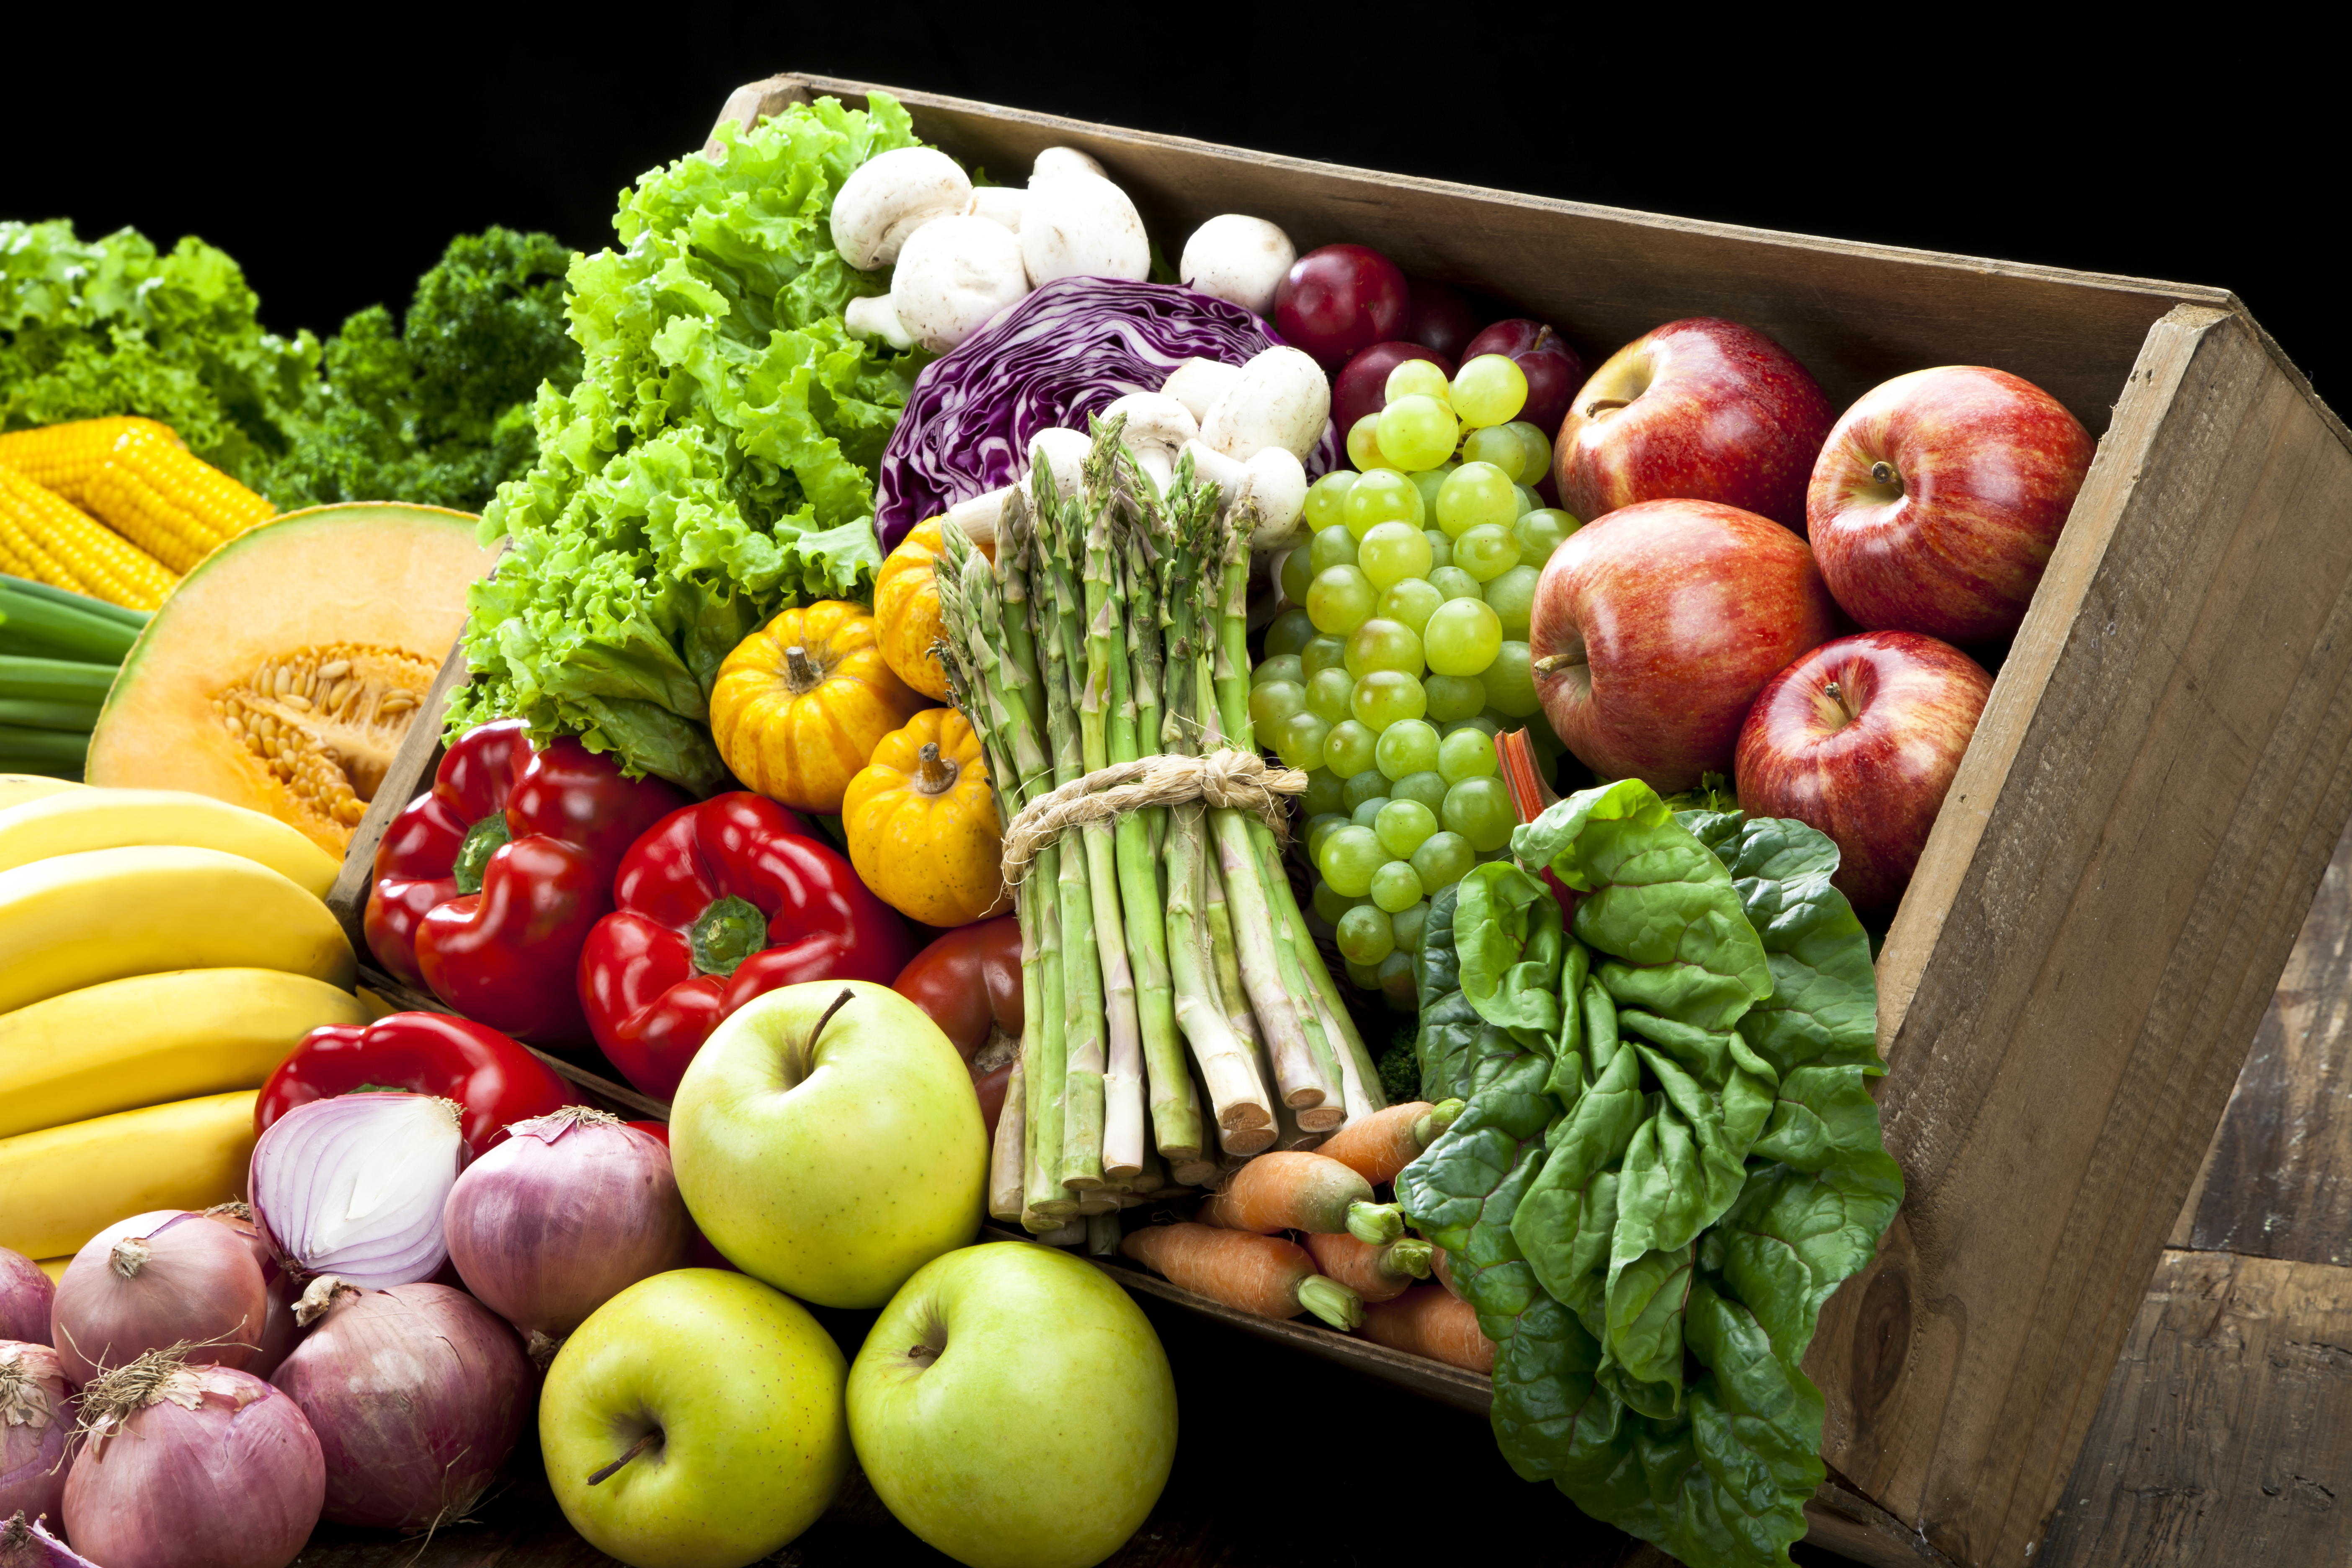 5 Fruits and Veggies Per Day Can Lower Your Risk of Death ...